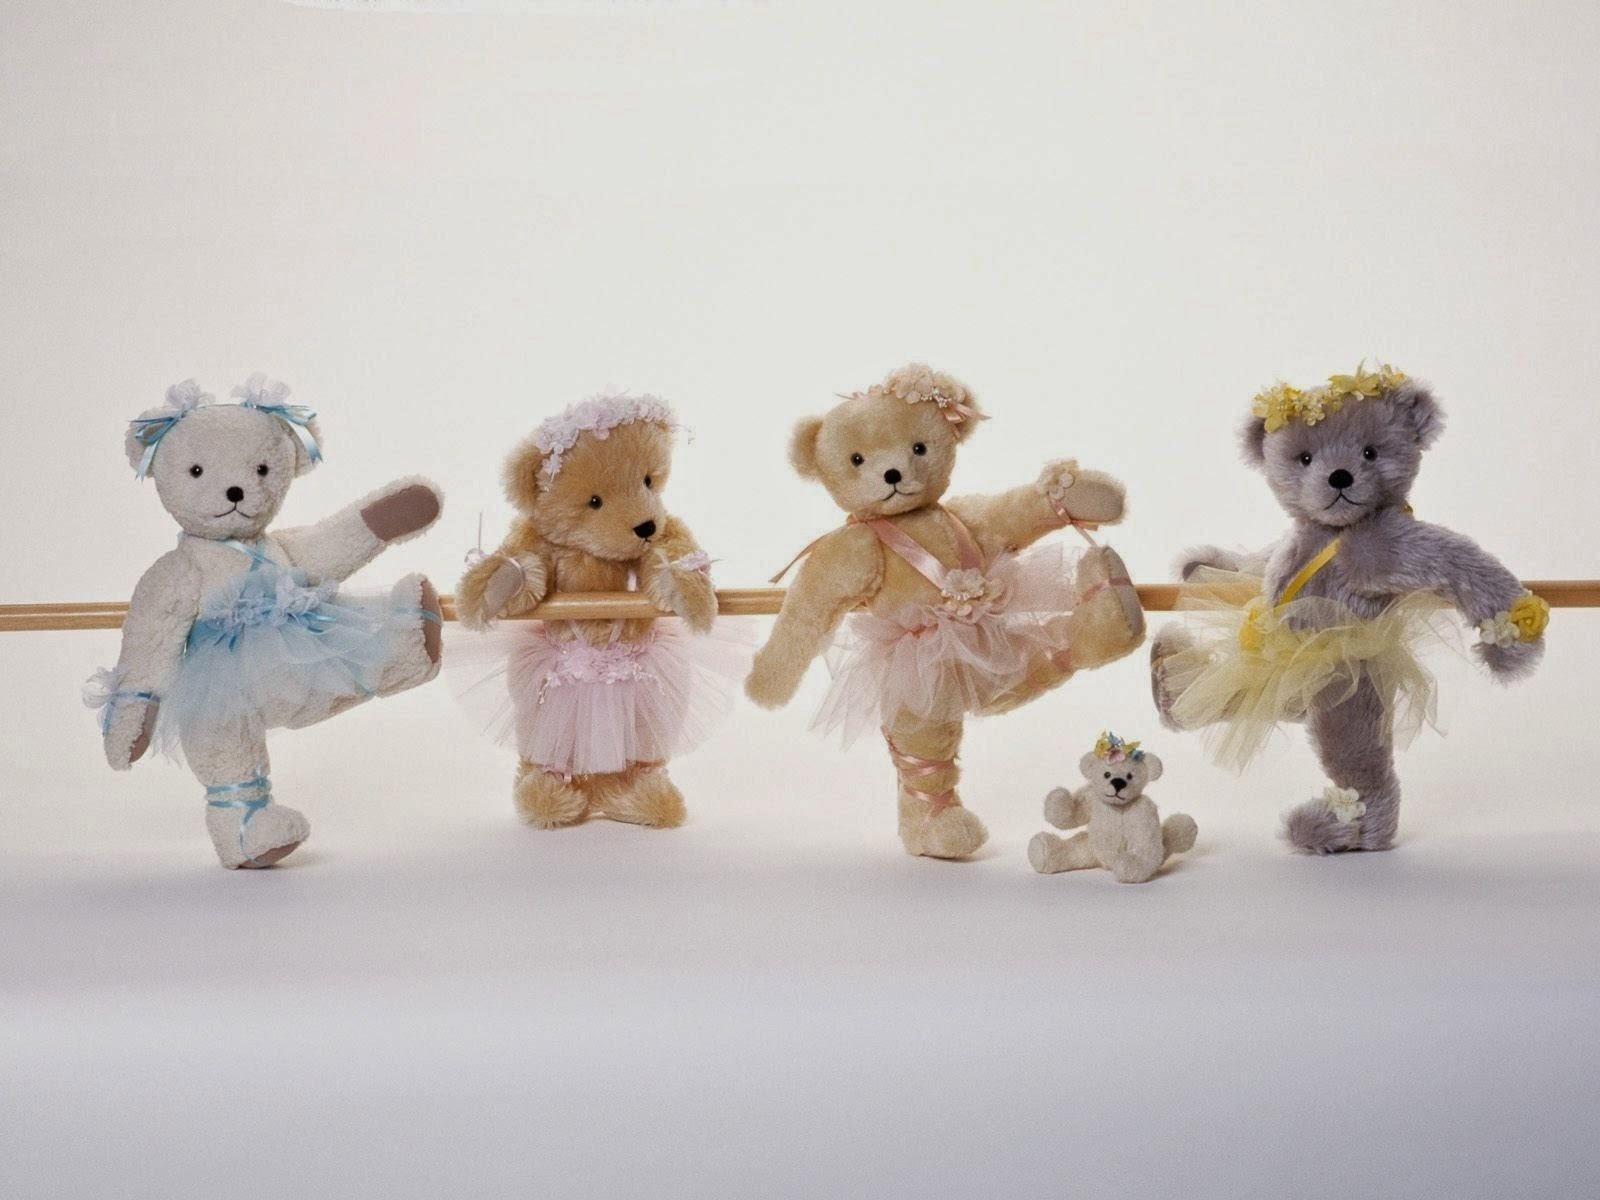 Cute Teddy Bear Wallpapers for little kids and children PIXHOME 1600x1200